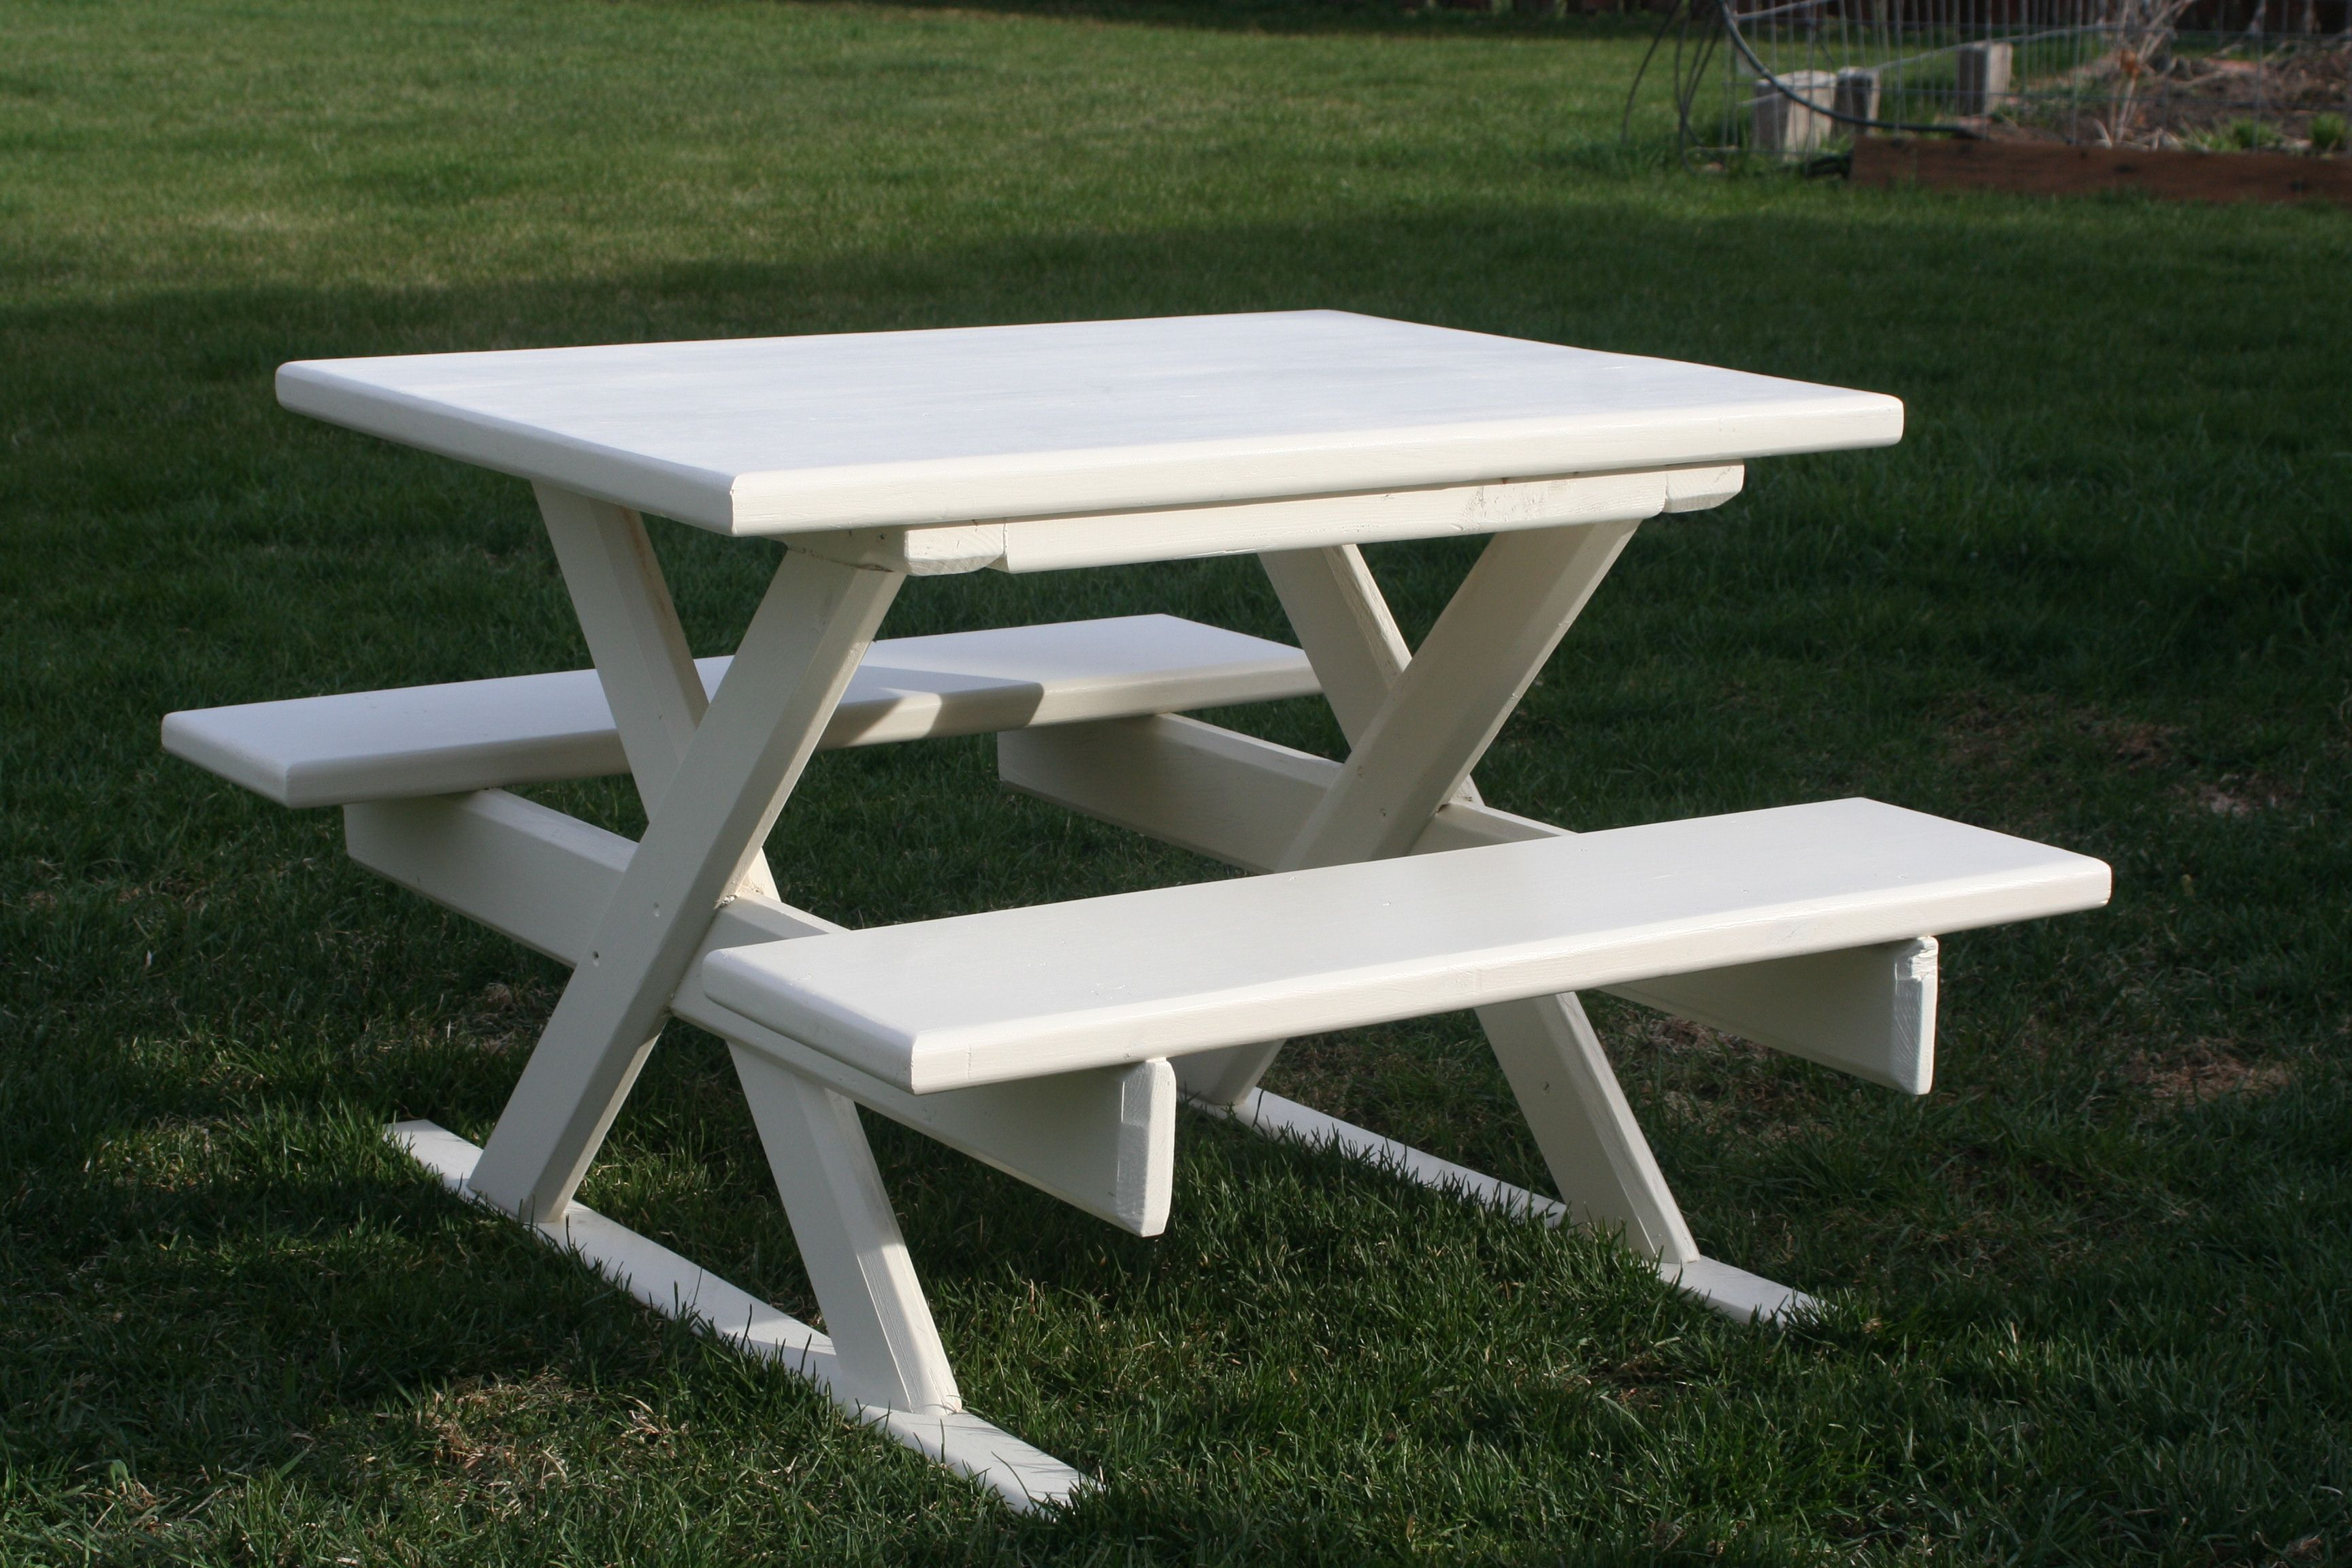 Kid-sized picnic table.